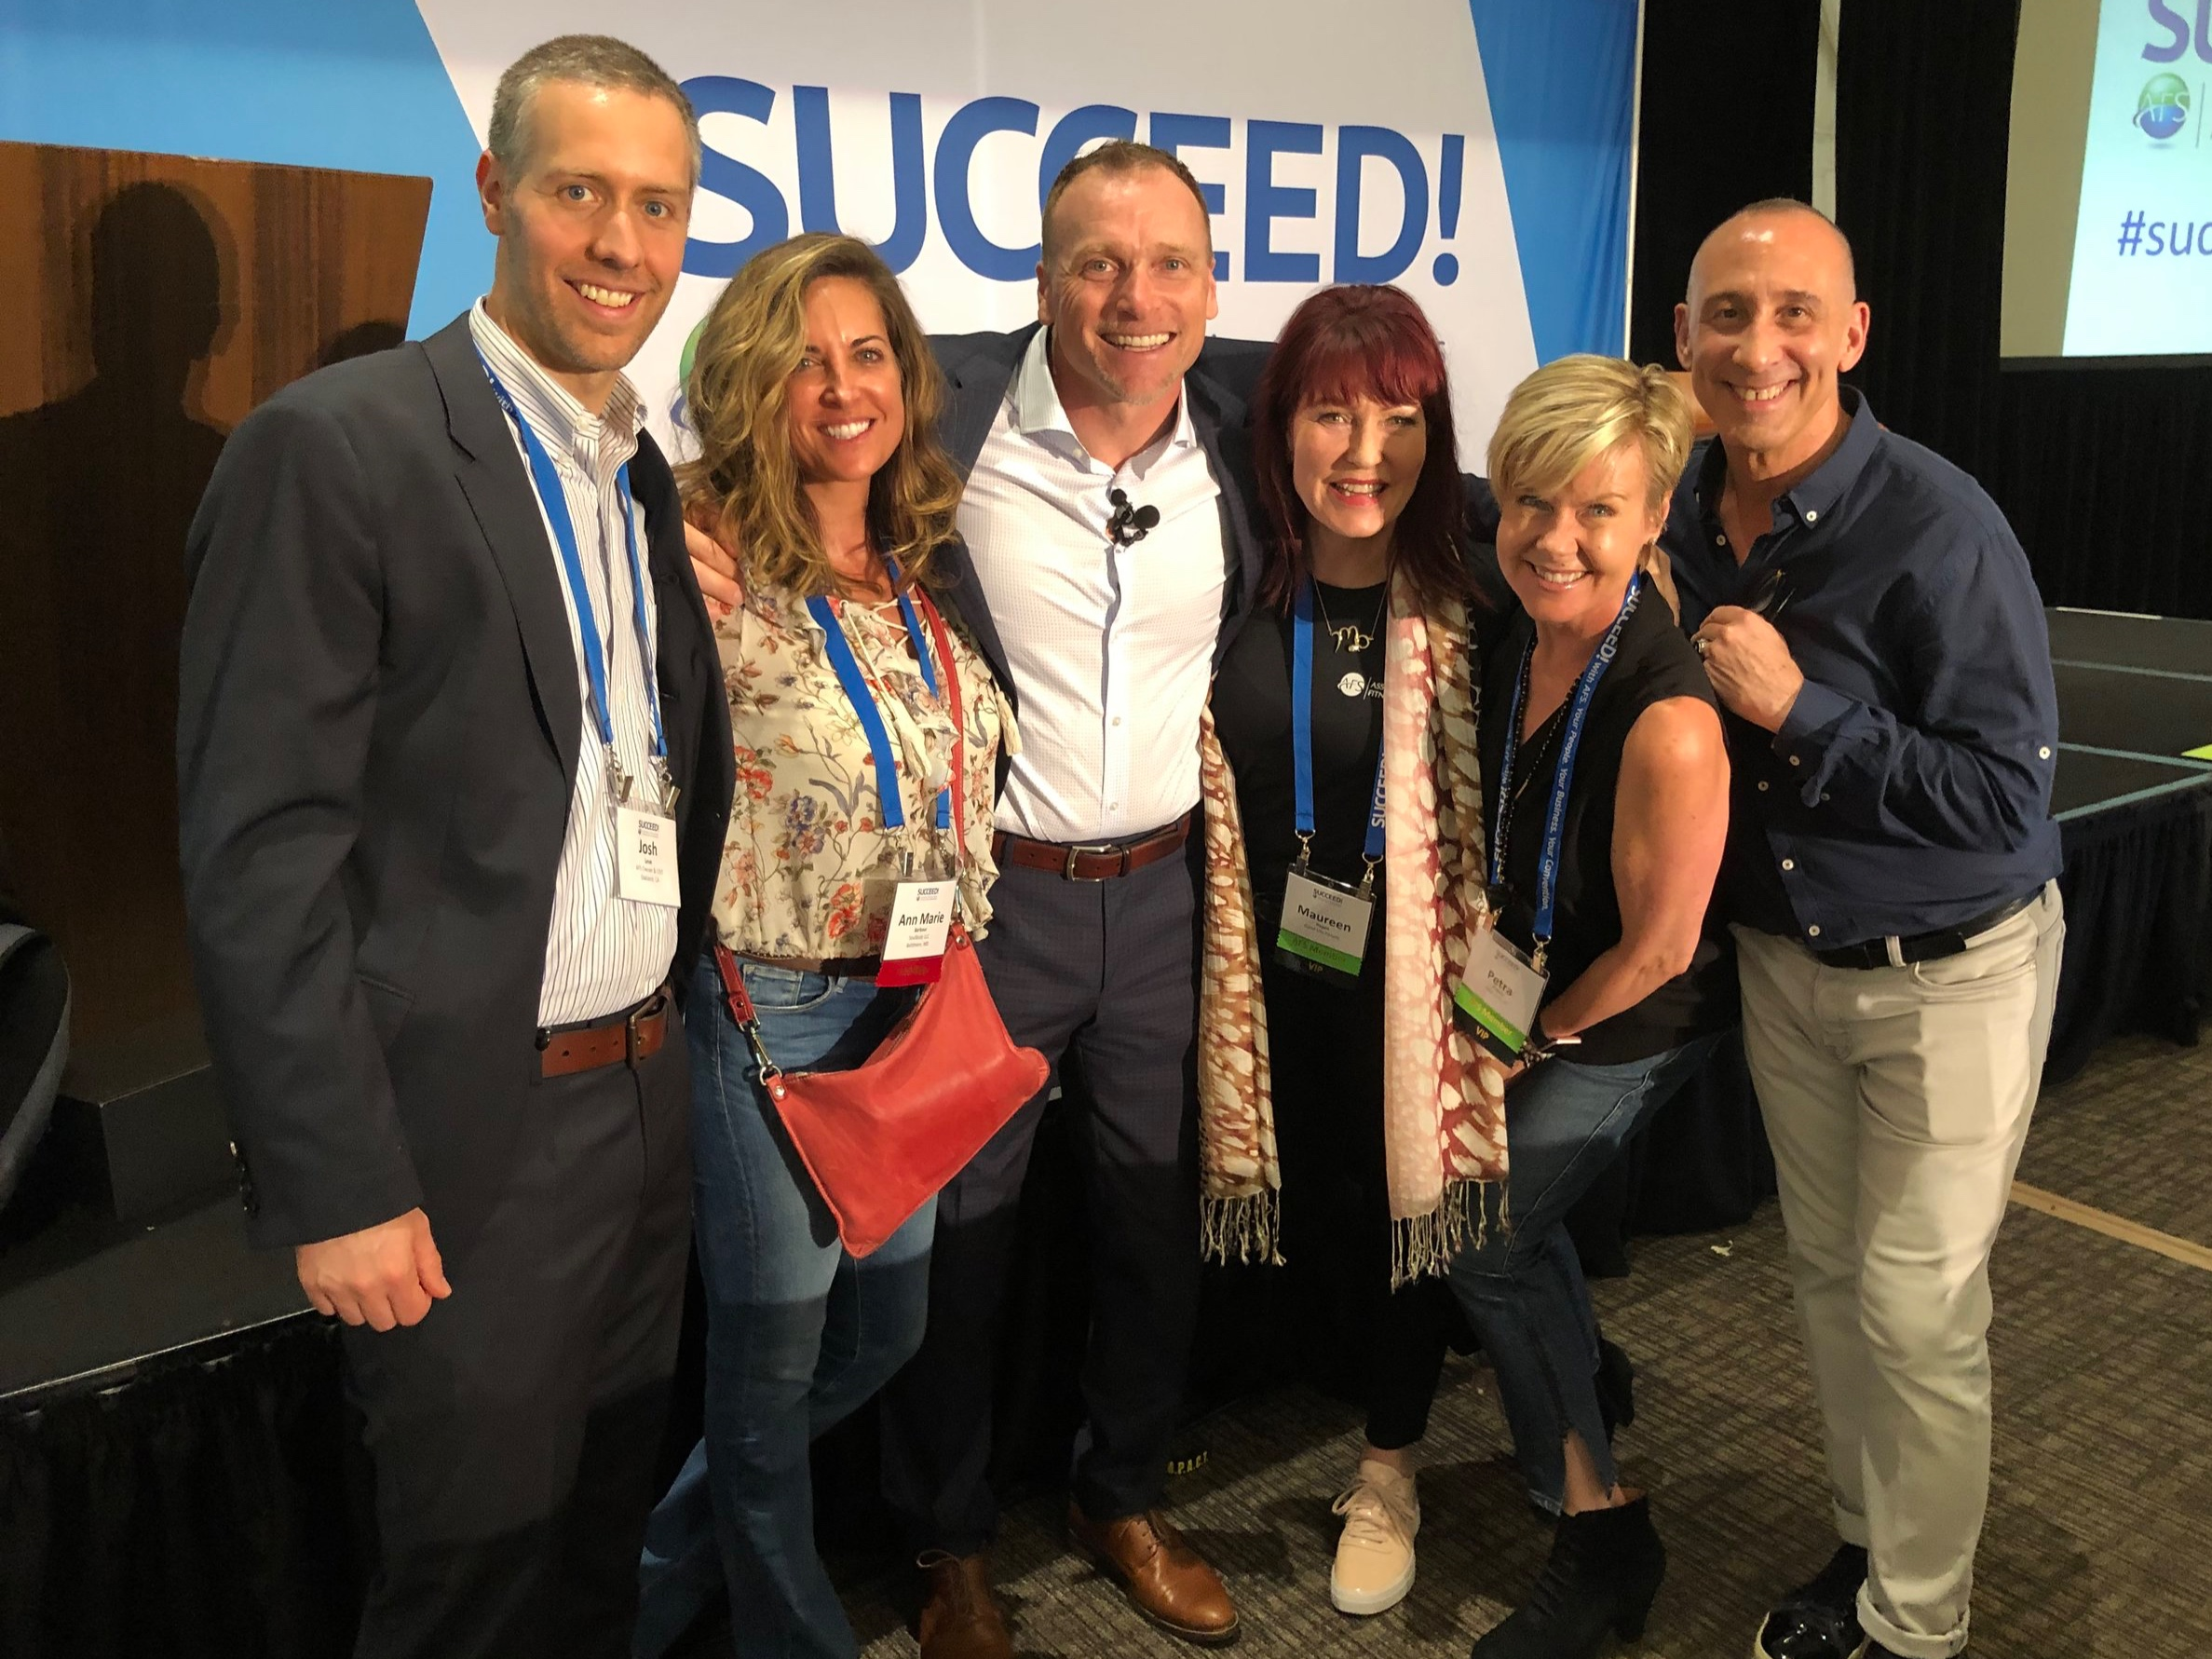 Big Names in Fitness - Hanging with some major movers and international influencers in the Fitness Space! Josh Leve, Founder & CEO of Association of Fitness Studios, Todd Durkin, conditioning coach and motivational speaker, Maureen Hagan, health wellness and anti-aging expert, Petra Kolber, speaker and educator and Fred Hoffman, fitness expert and consultant